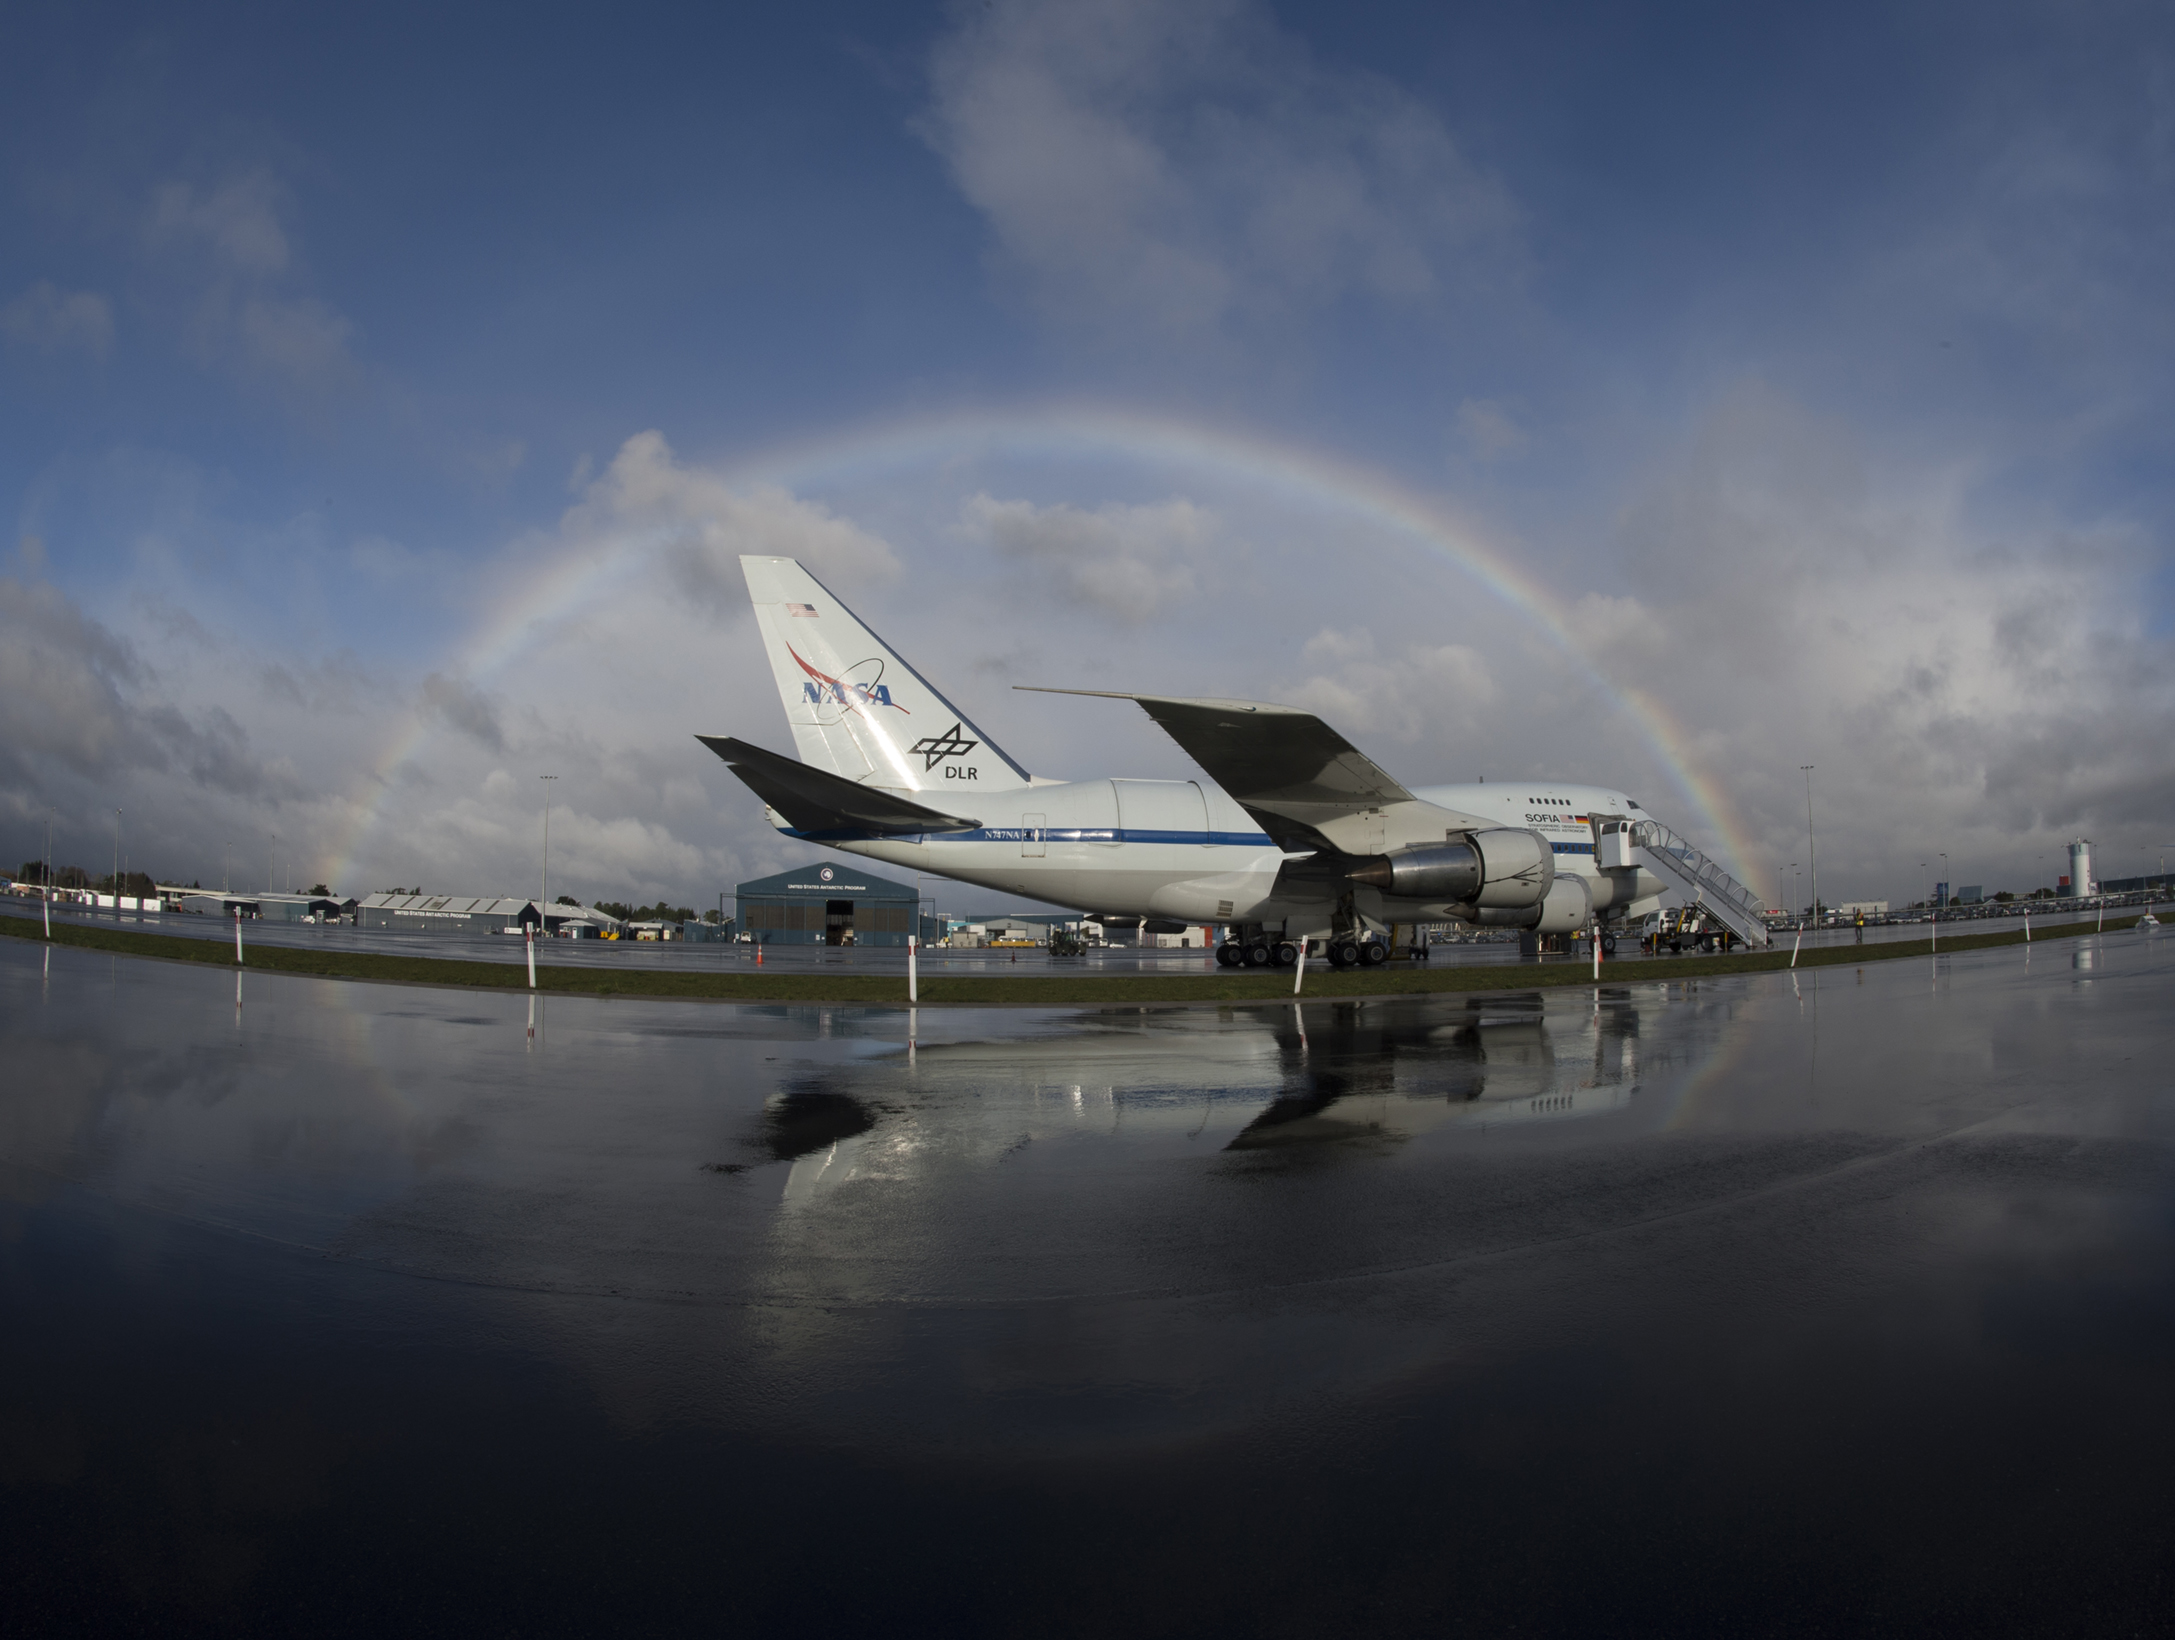 NASA Seeks Partners to Save SOFIA Flying Telescope